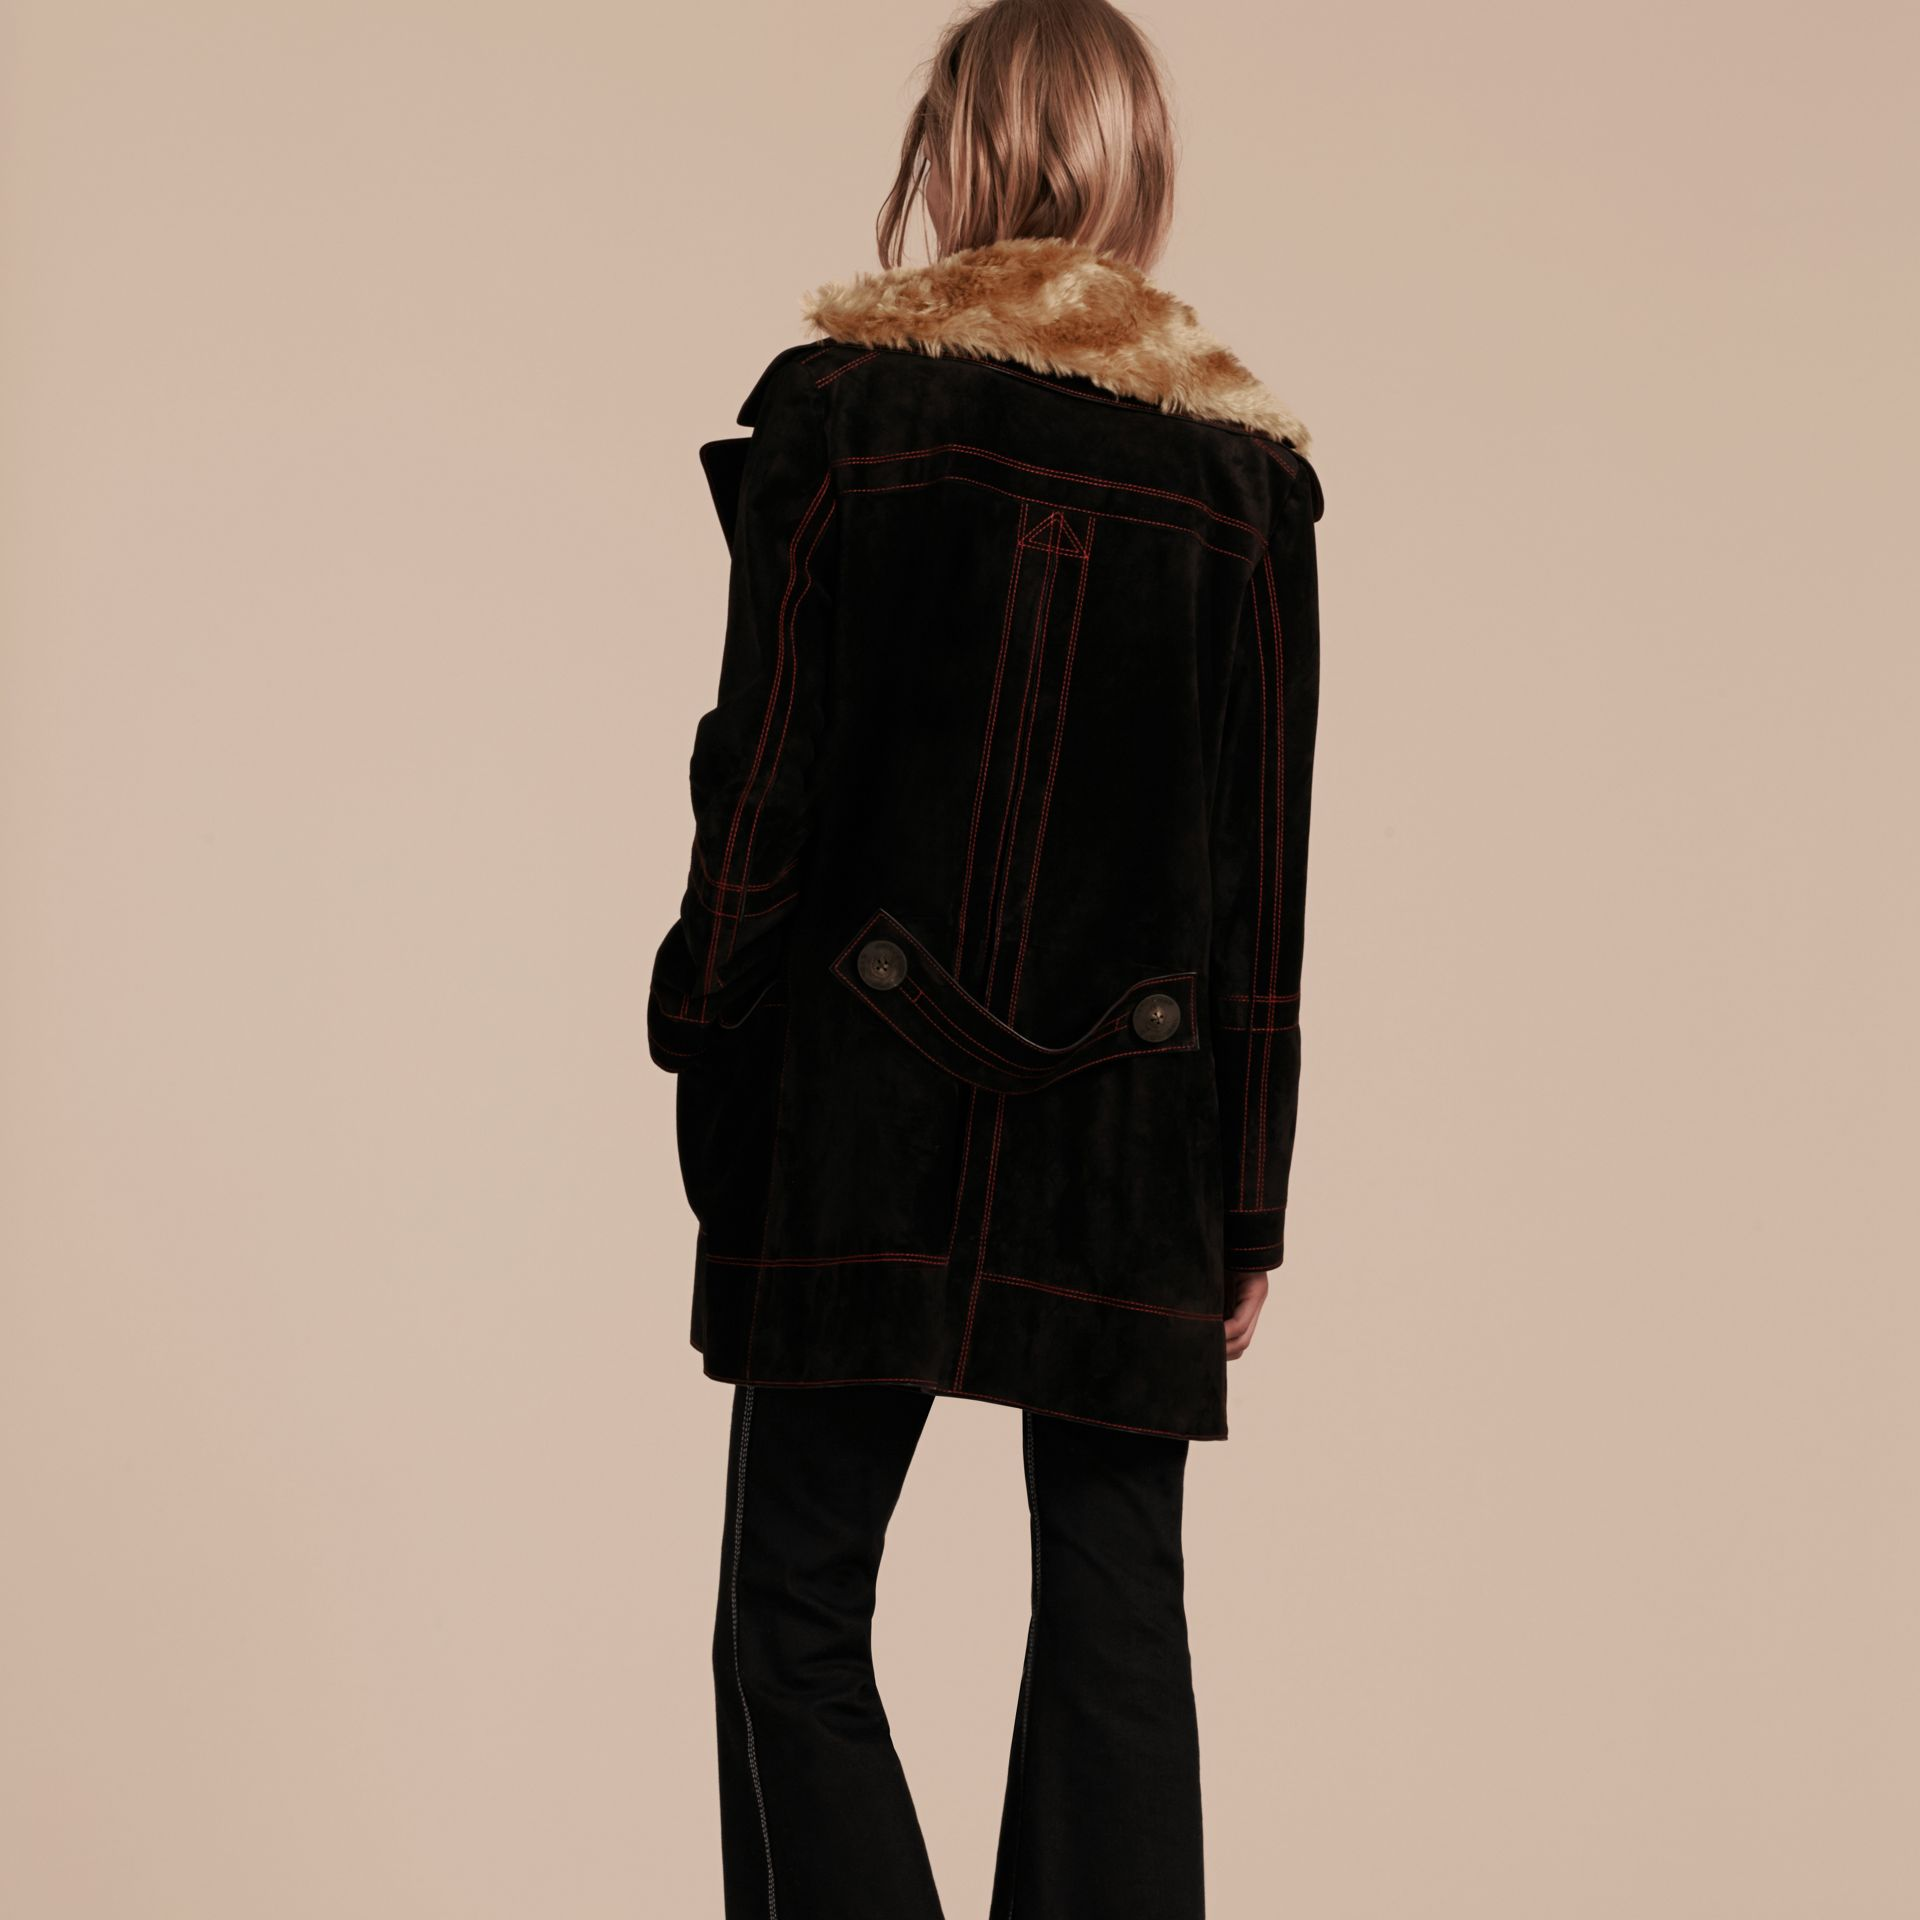 Black Suede Pea Coat with Shearling Topcollar - gallery image 3